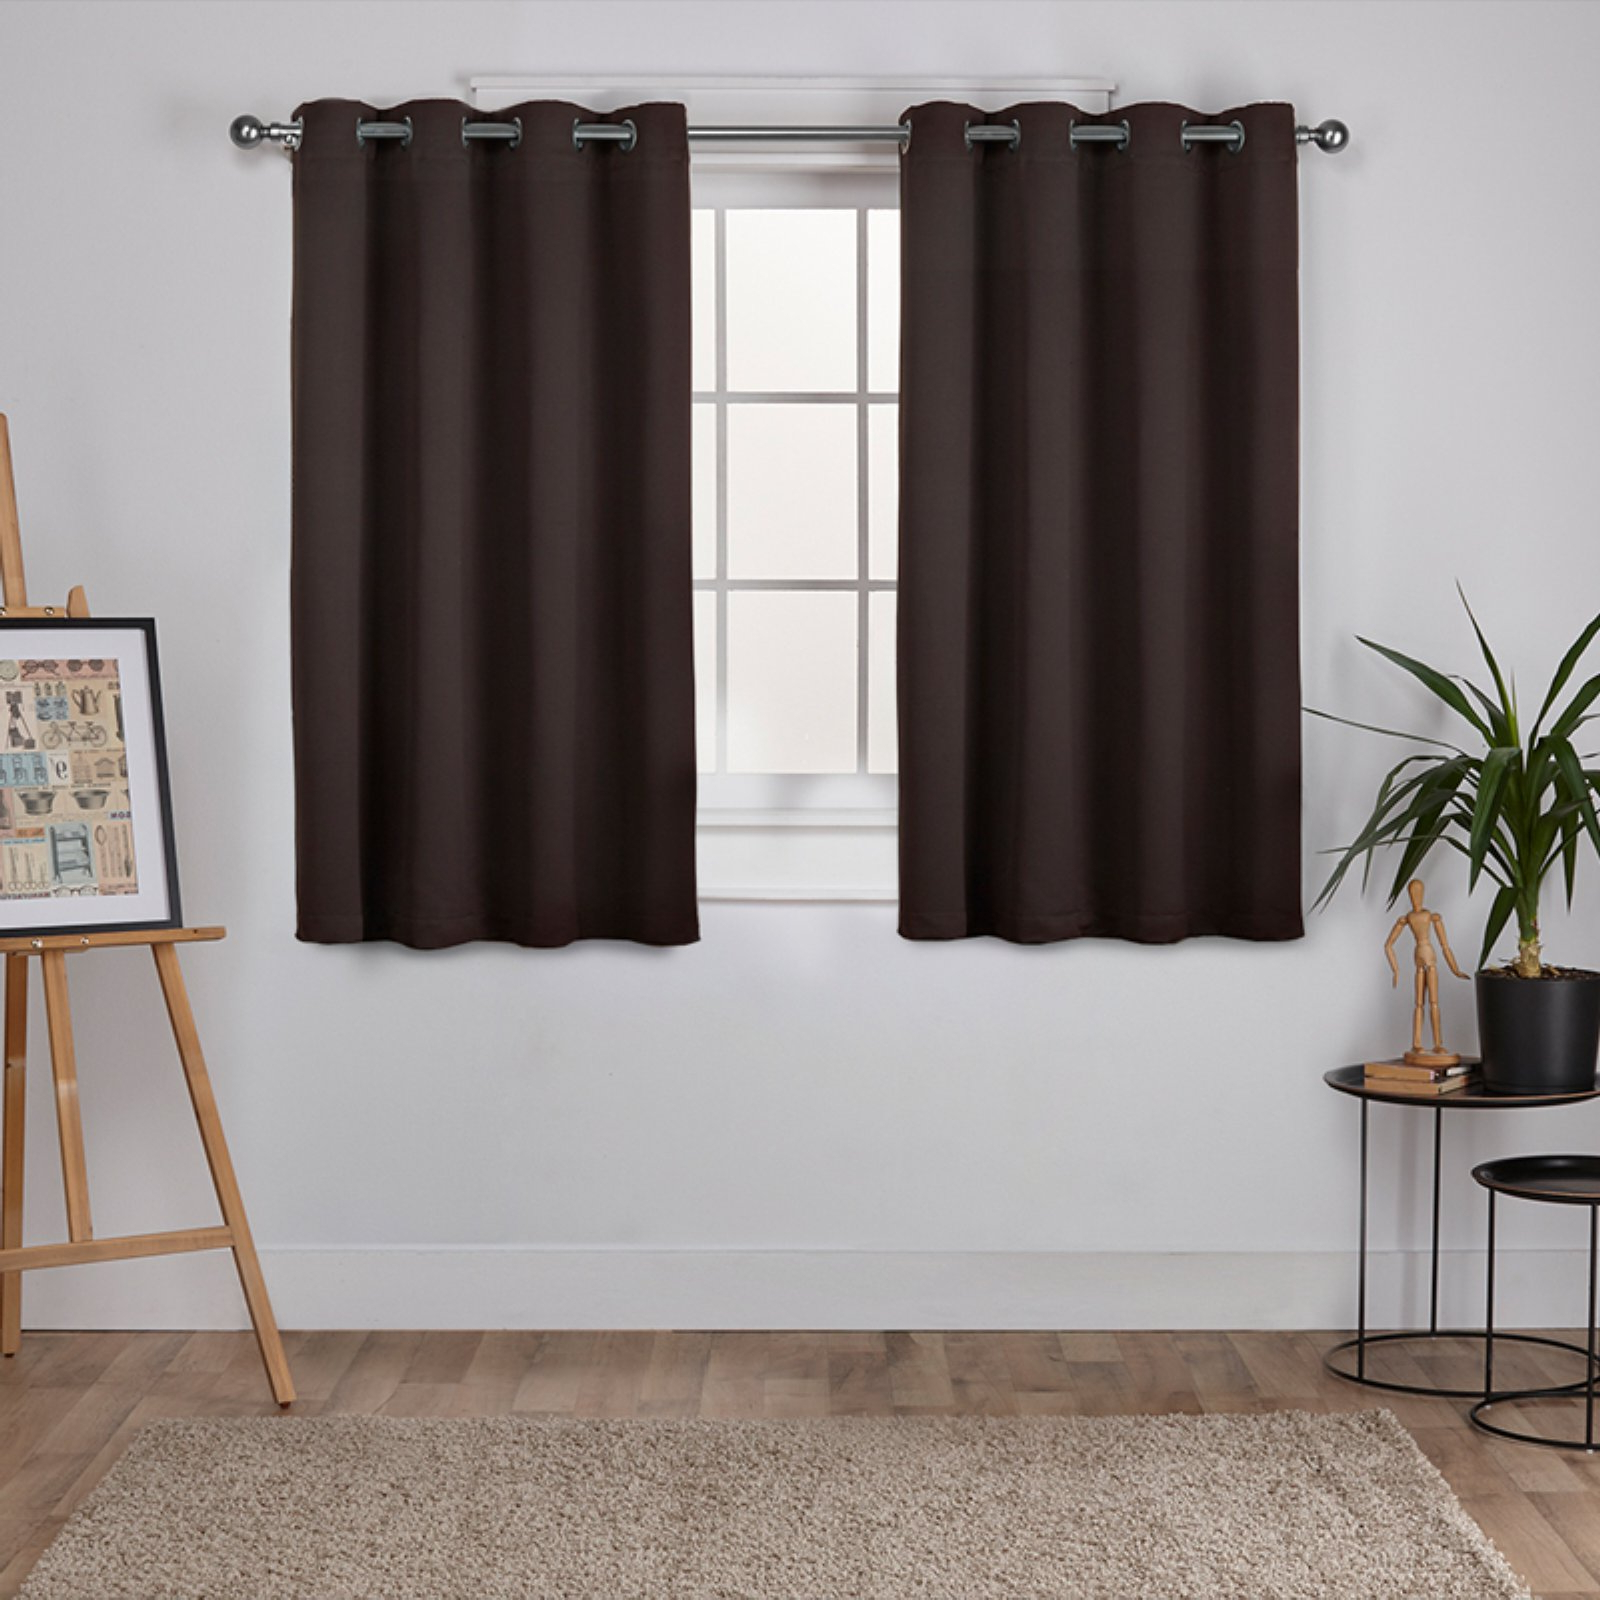 Well Known Exclusive Home Sateen Twill Weave Blackout Window Curtain Panel Pair With Grommet Top Inside Insulated Blackout Grommet Window Curtain Panel Pairs (View 18 of 20)